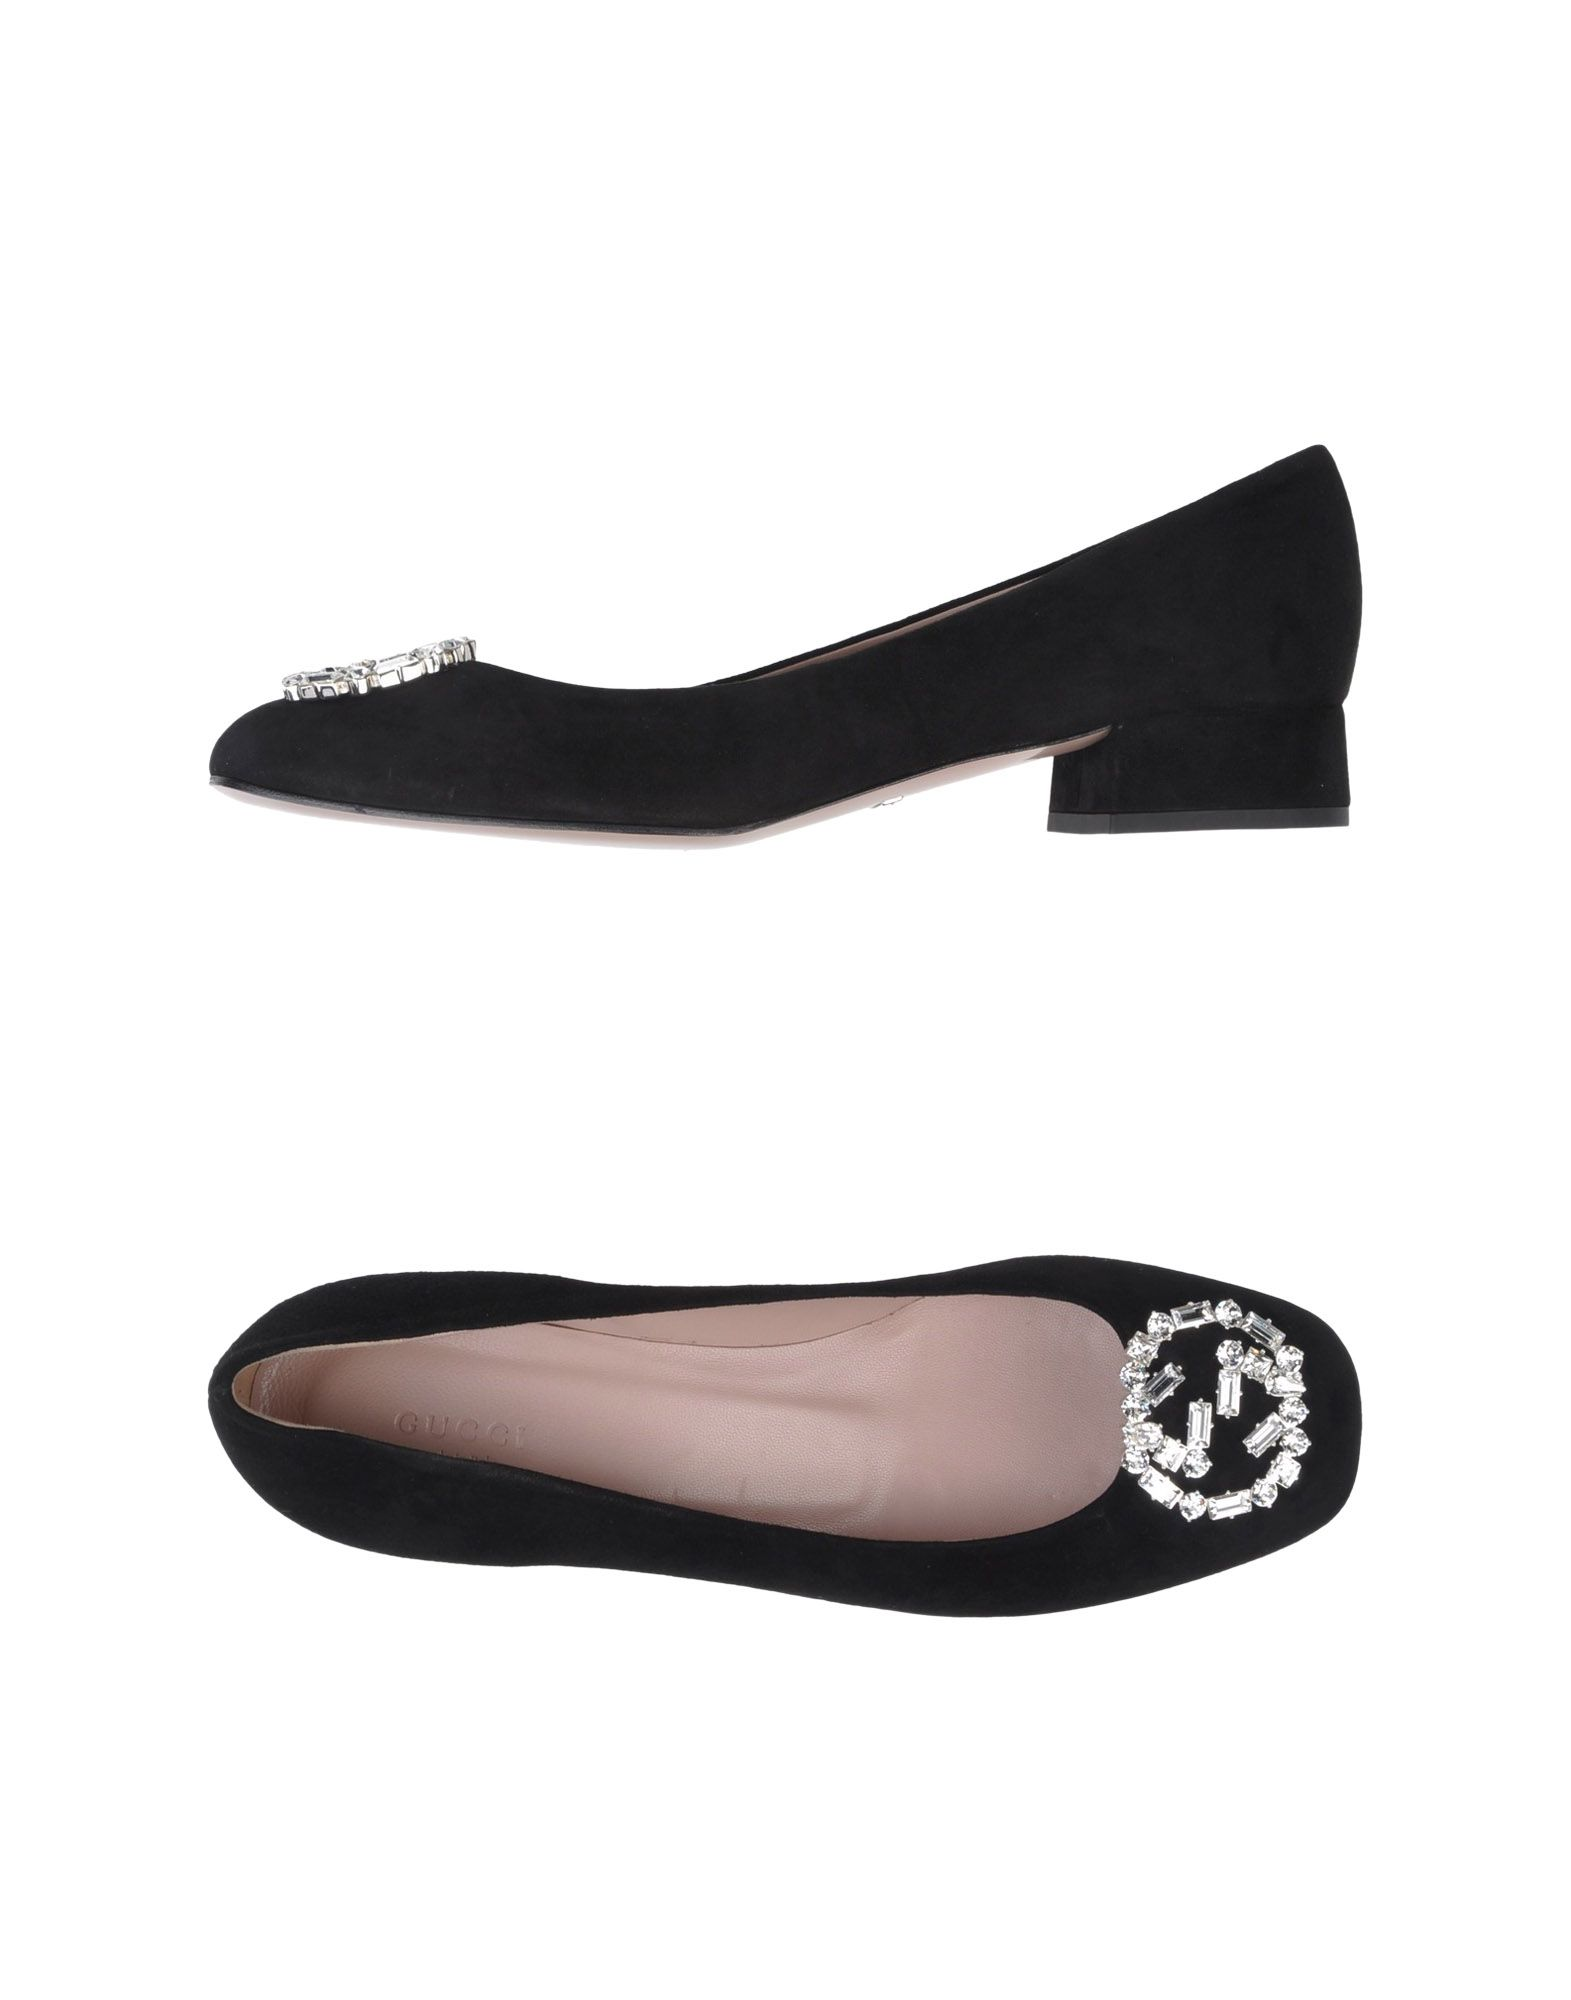 Gucci Pumps Damen - Pu...